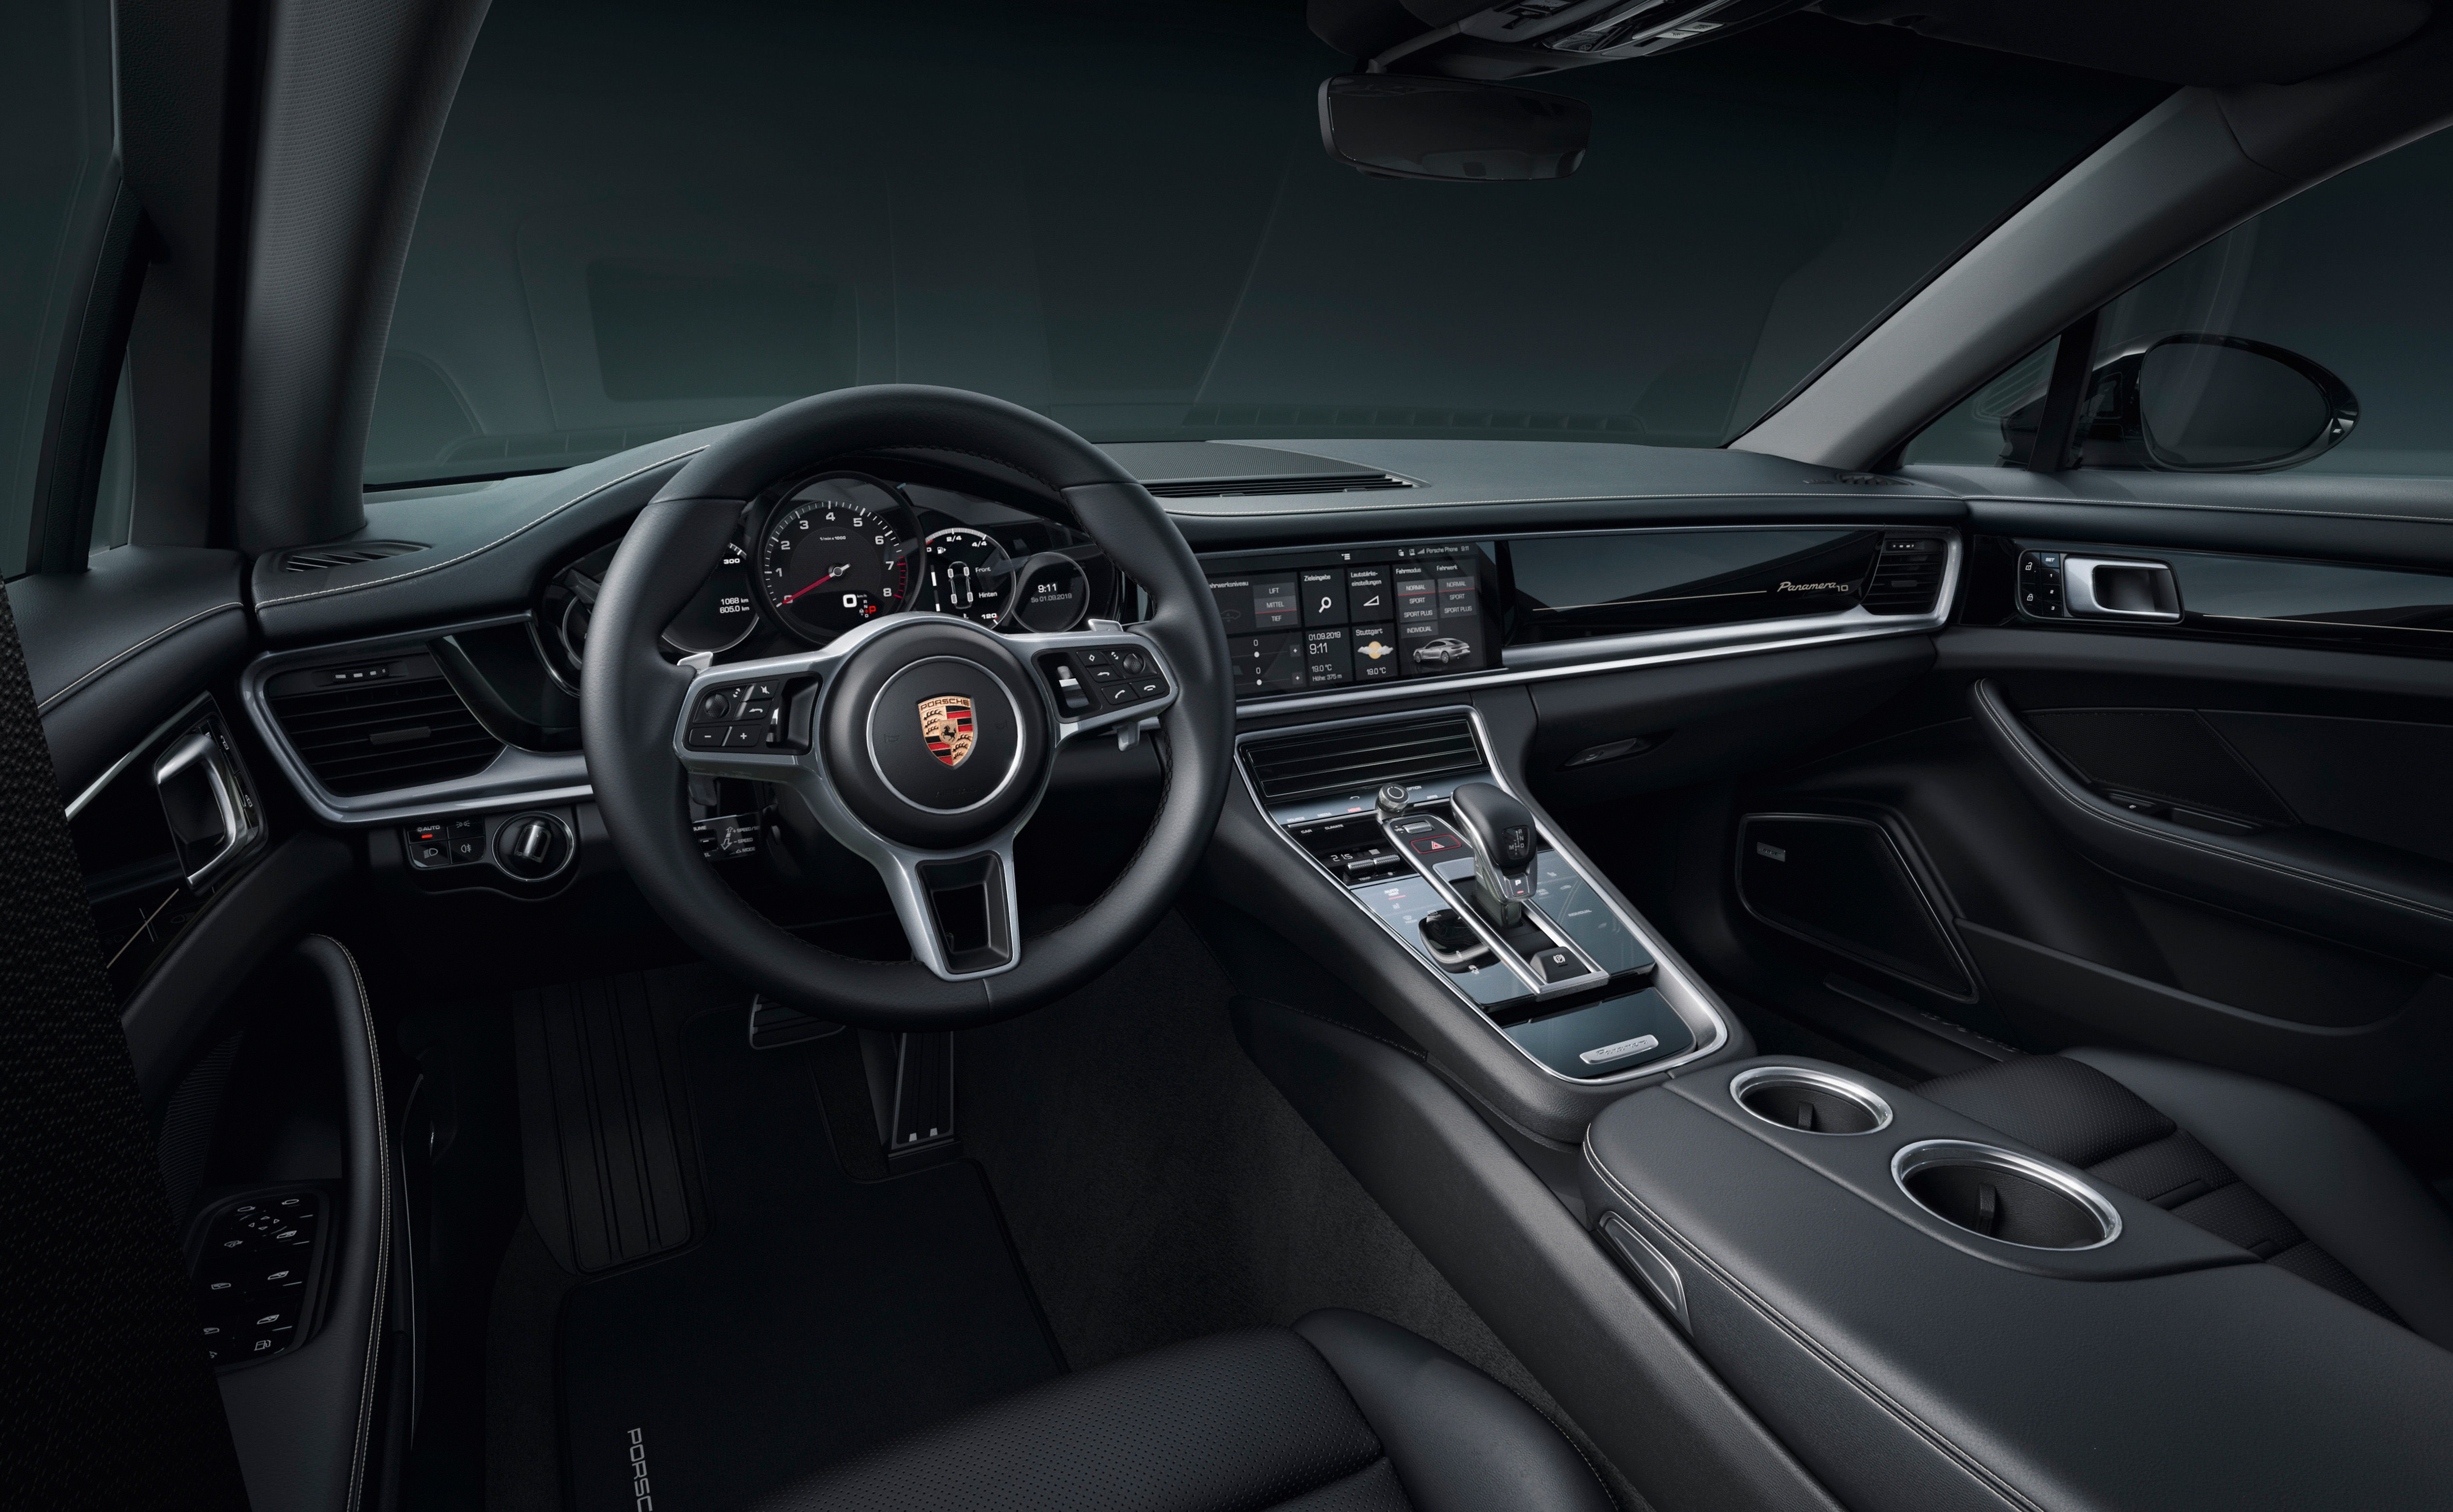 The interior gets a panoramic sunroof, 14-way comfort seats with the Porsche crest on the head restraints, soft-close doors, digital radio and a Bose surround sound system come as standard equipment.